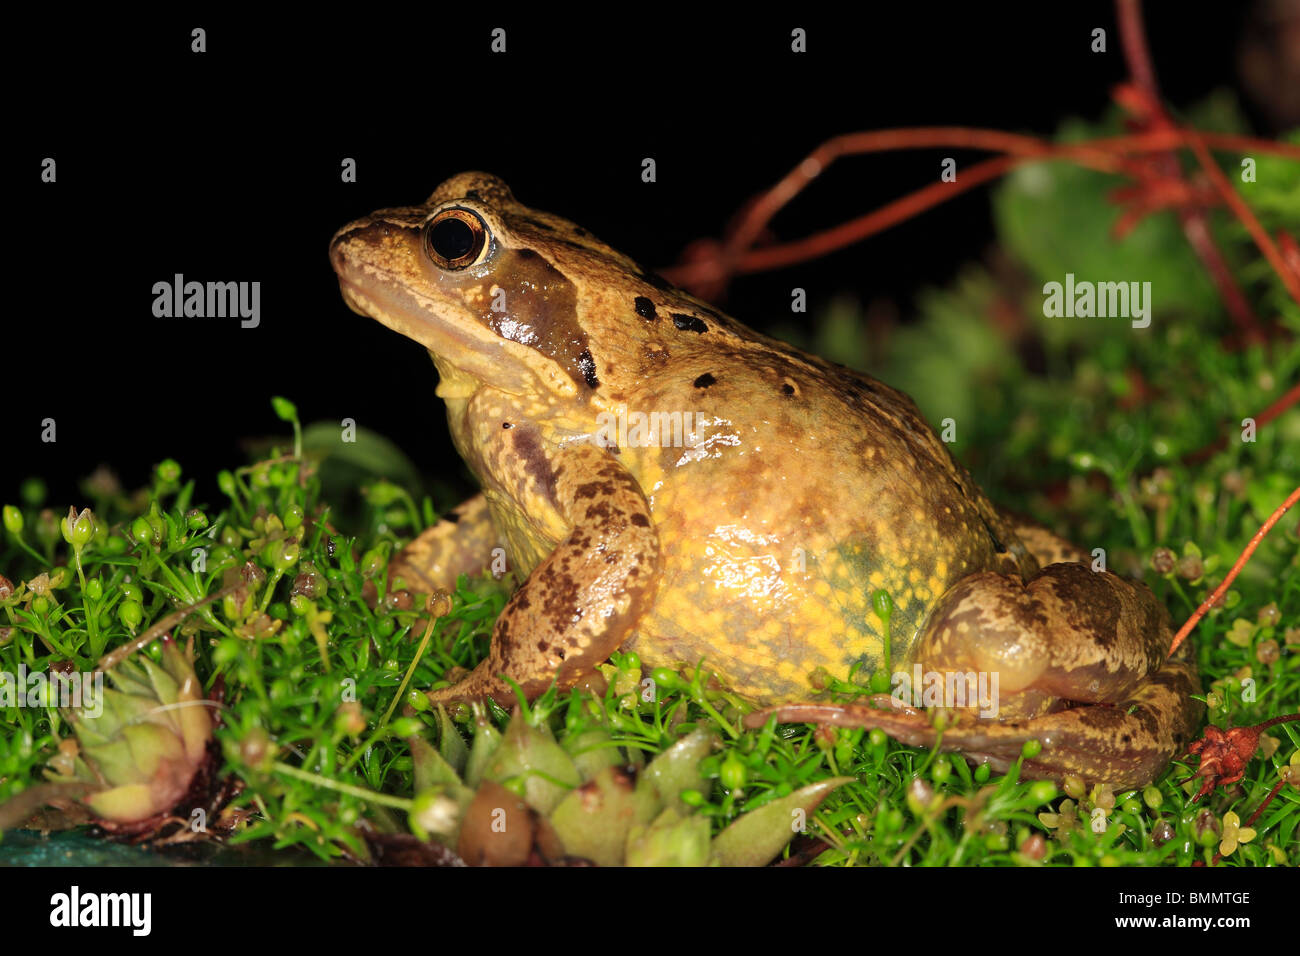 COMMON FROG (Rana temporaria) SITTING IN PLANT BORDER AT NIGHT SIDE VIEW - Stock Image